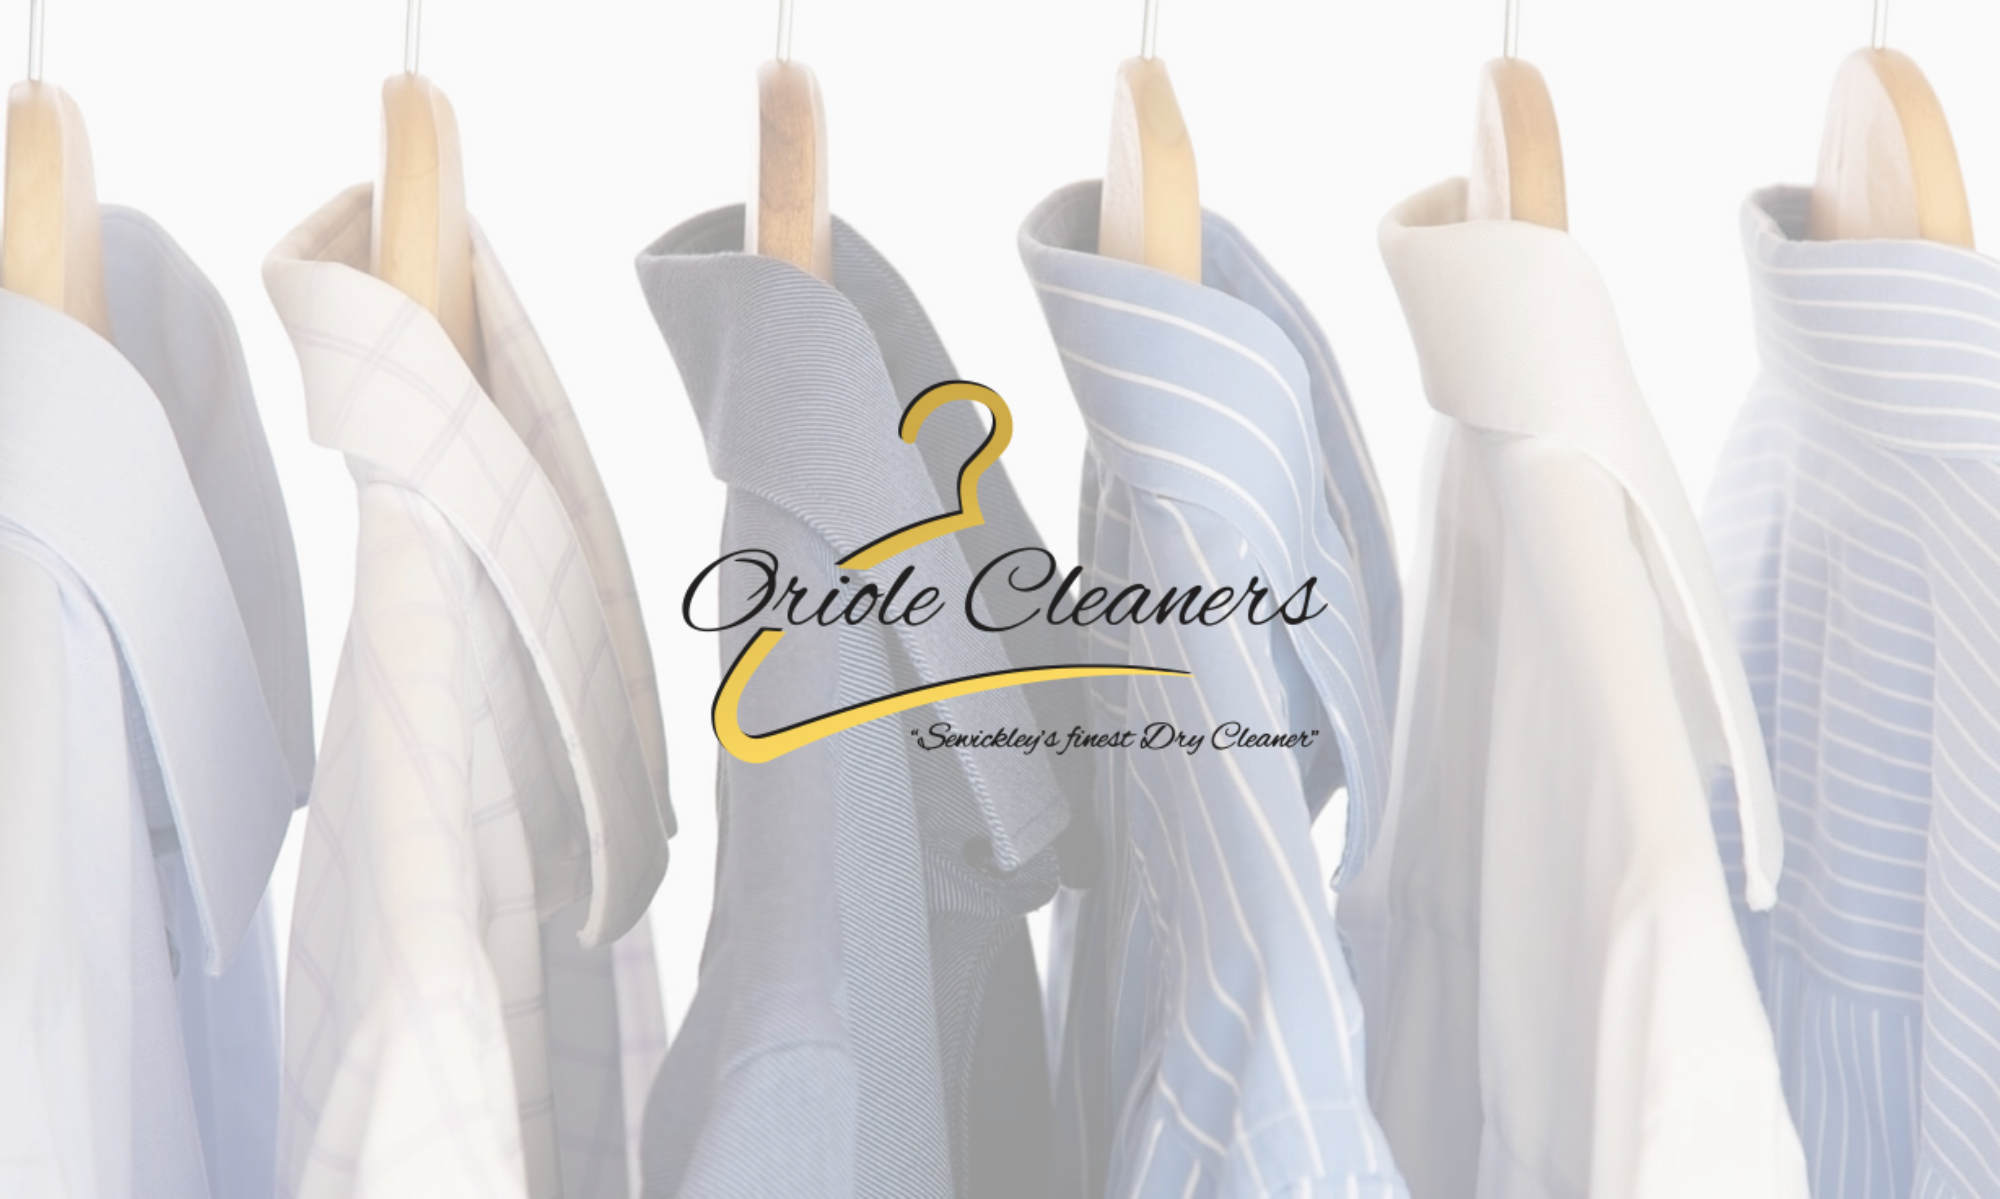 Oriole Cleaners